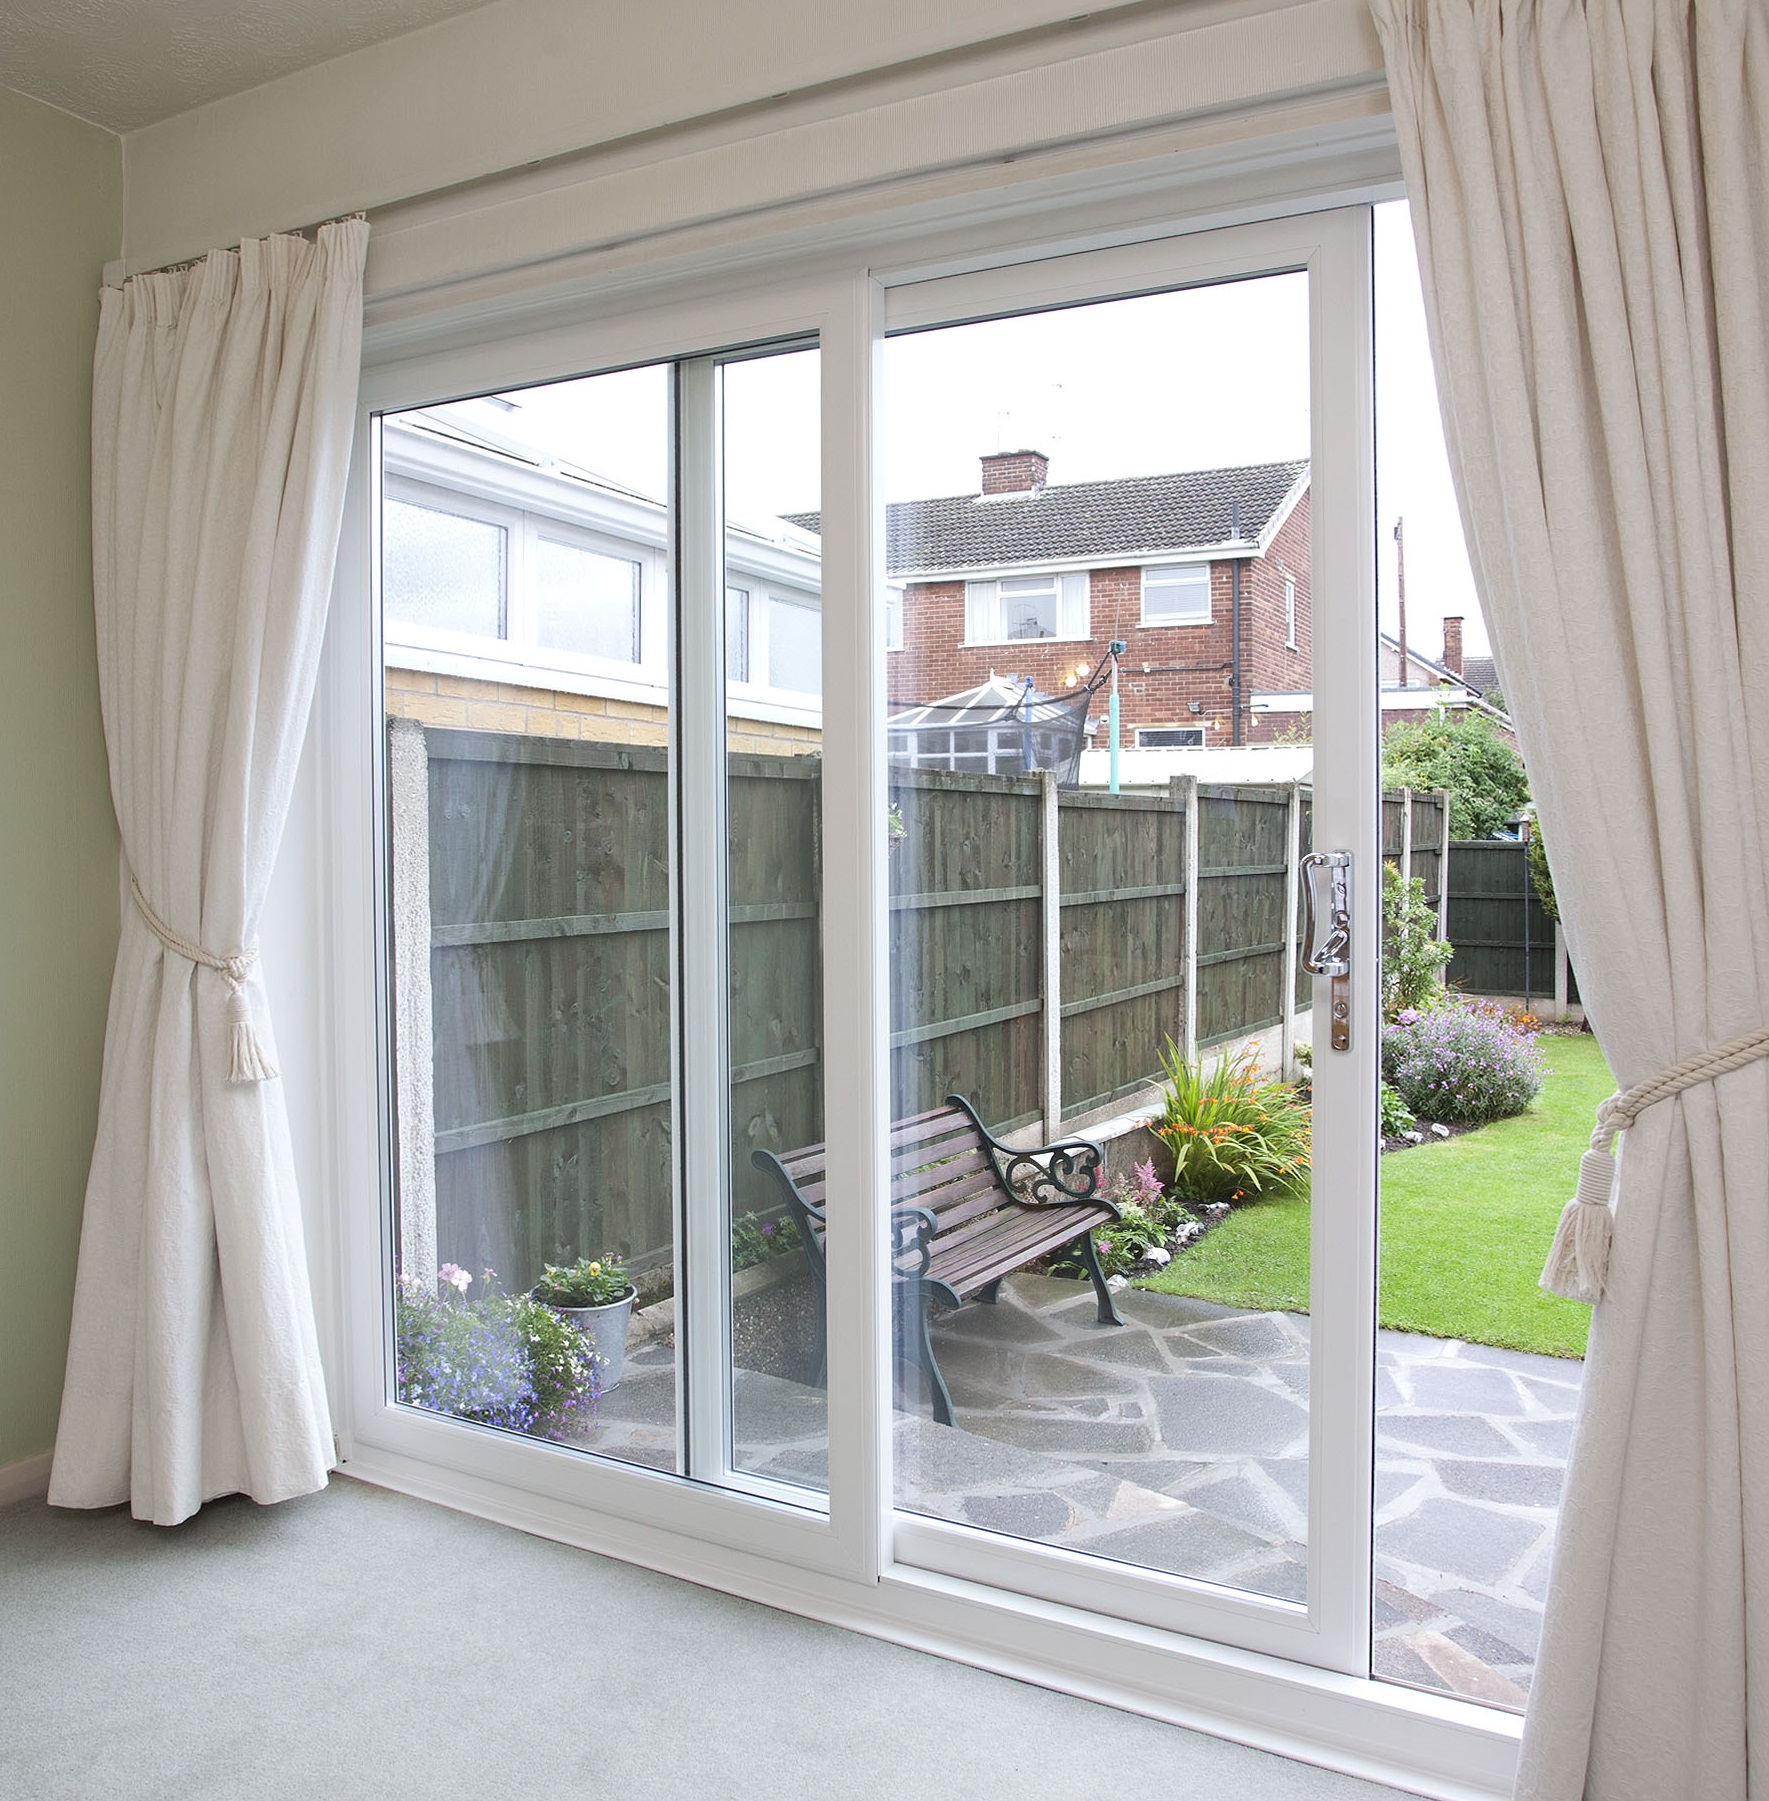 Patio Door Security Systems: Whiteline Manufacturing Ltd